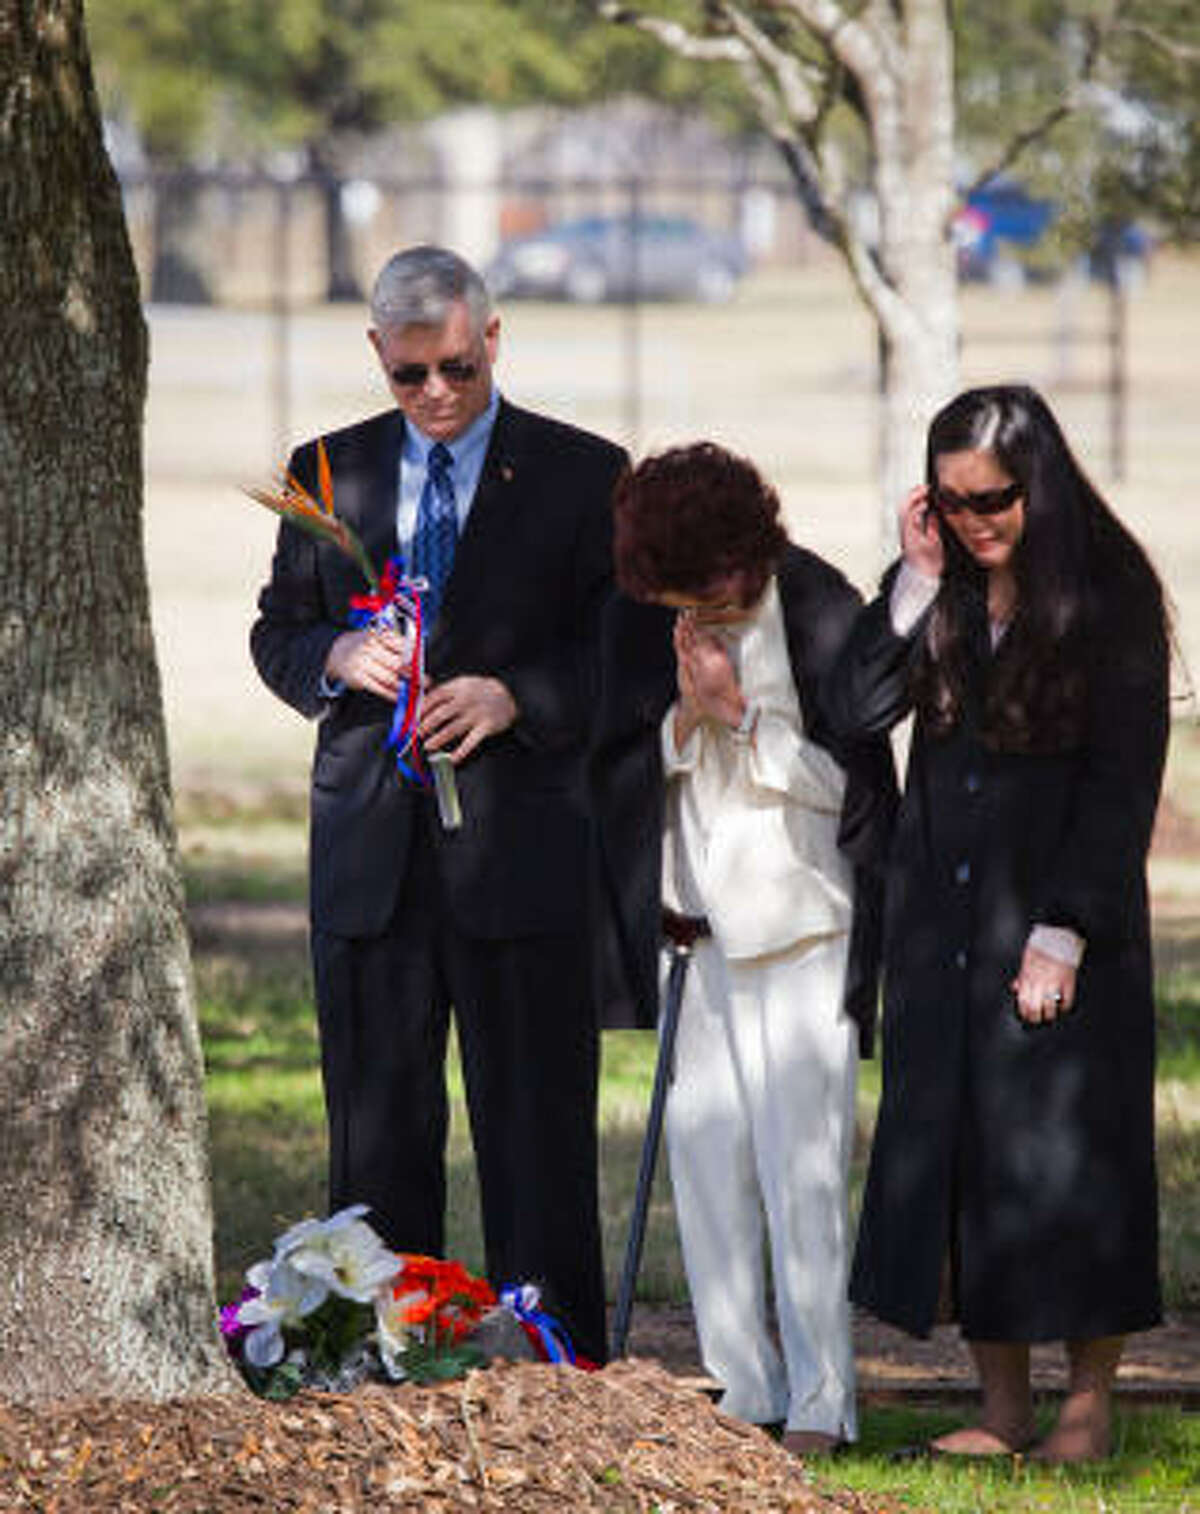 Johnson Space center director Michael L. Coats, left, stands with Lorena Onizaka and Darien Onizuka-Morgan, the wife and daughter of space shuttle Challenger astronaut Ellison Onizuka, after placing flowers on a memorial marker for Onizuka in the Astronaut Memorial Tree Grove during the annual National Day of Remembrance ceremony at the Johnson Space Center on Thursday, Jan. 27, 2011, in Houston. NASA holds the agency-wide Day of Remembrance every January to honor the fallen crews of Apollo 1and space shuttles Challenger and Columbia.